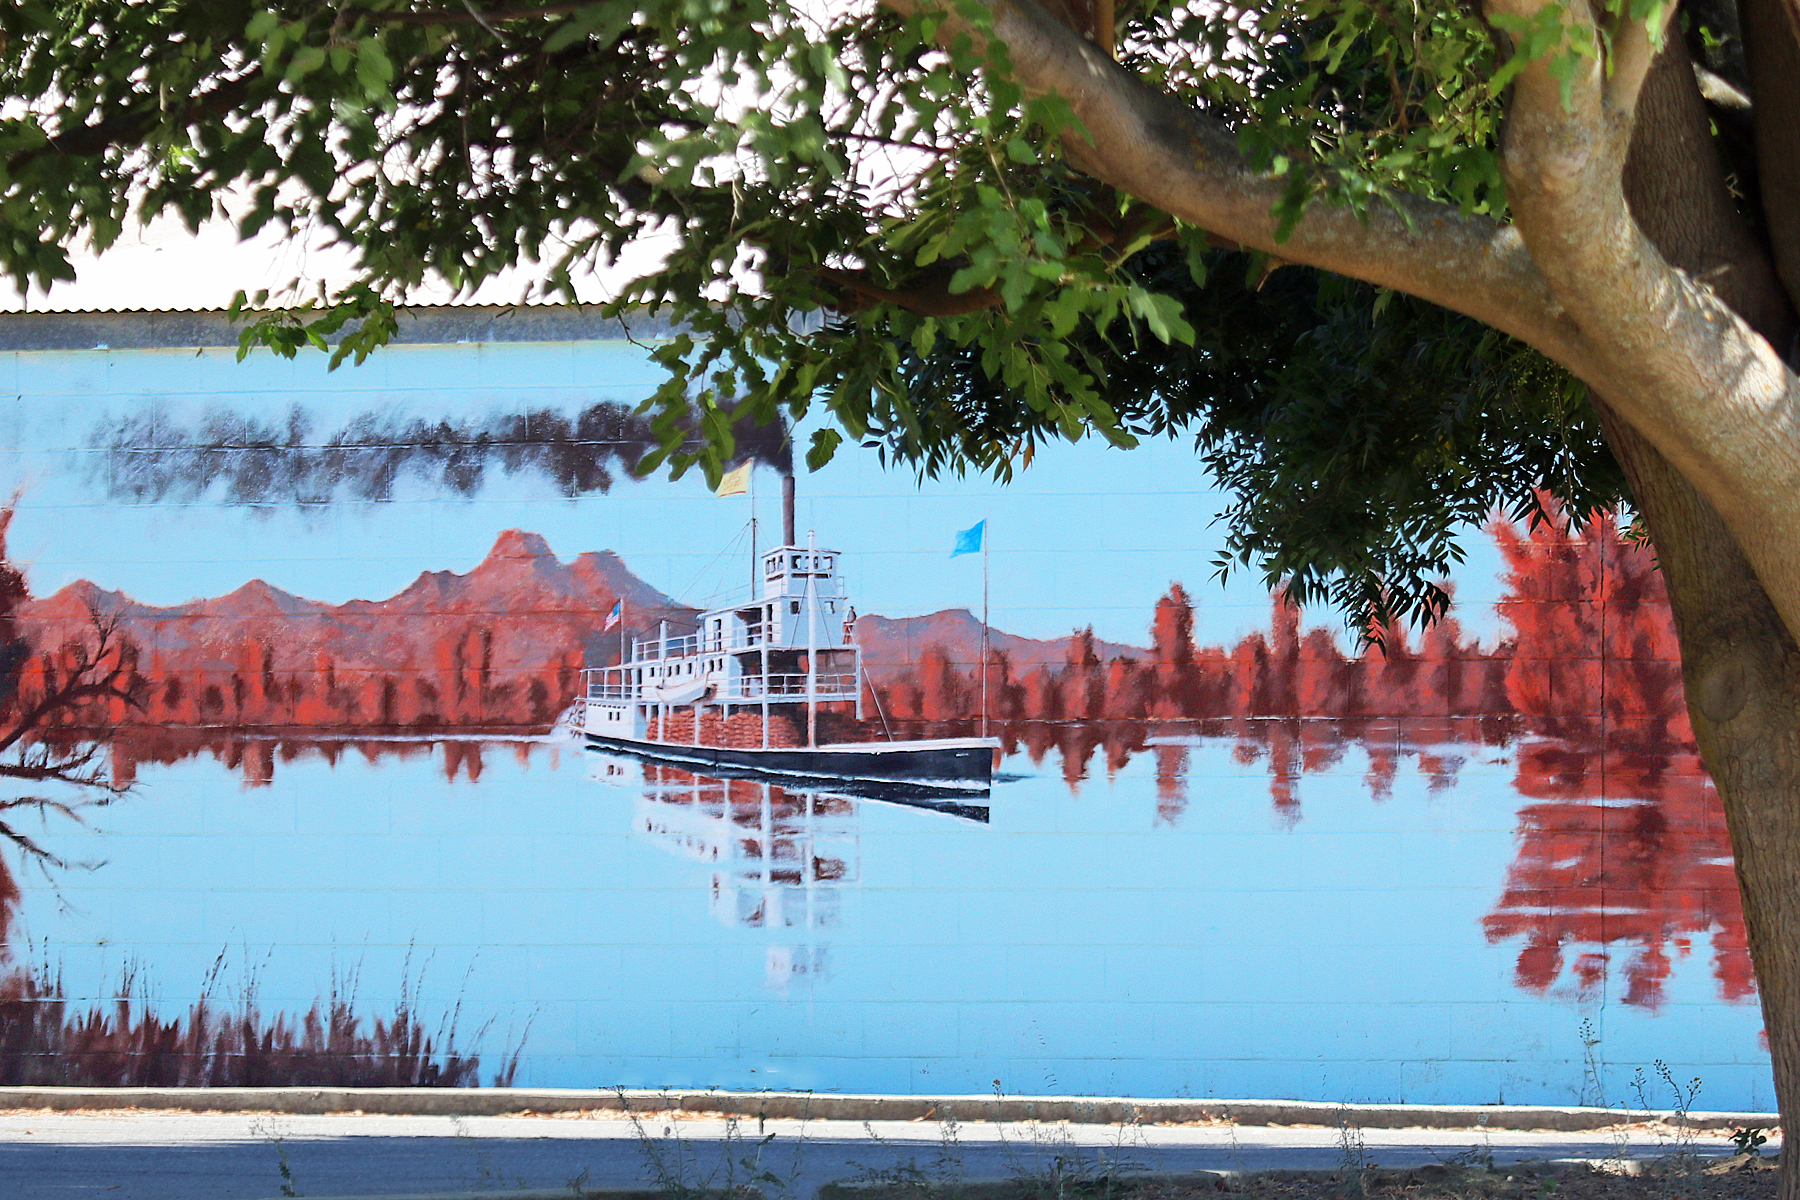 mural of a boat on the river